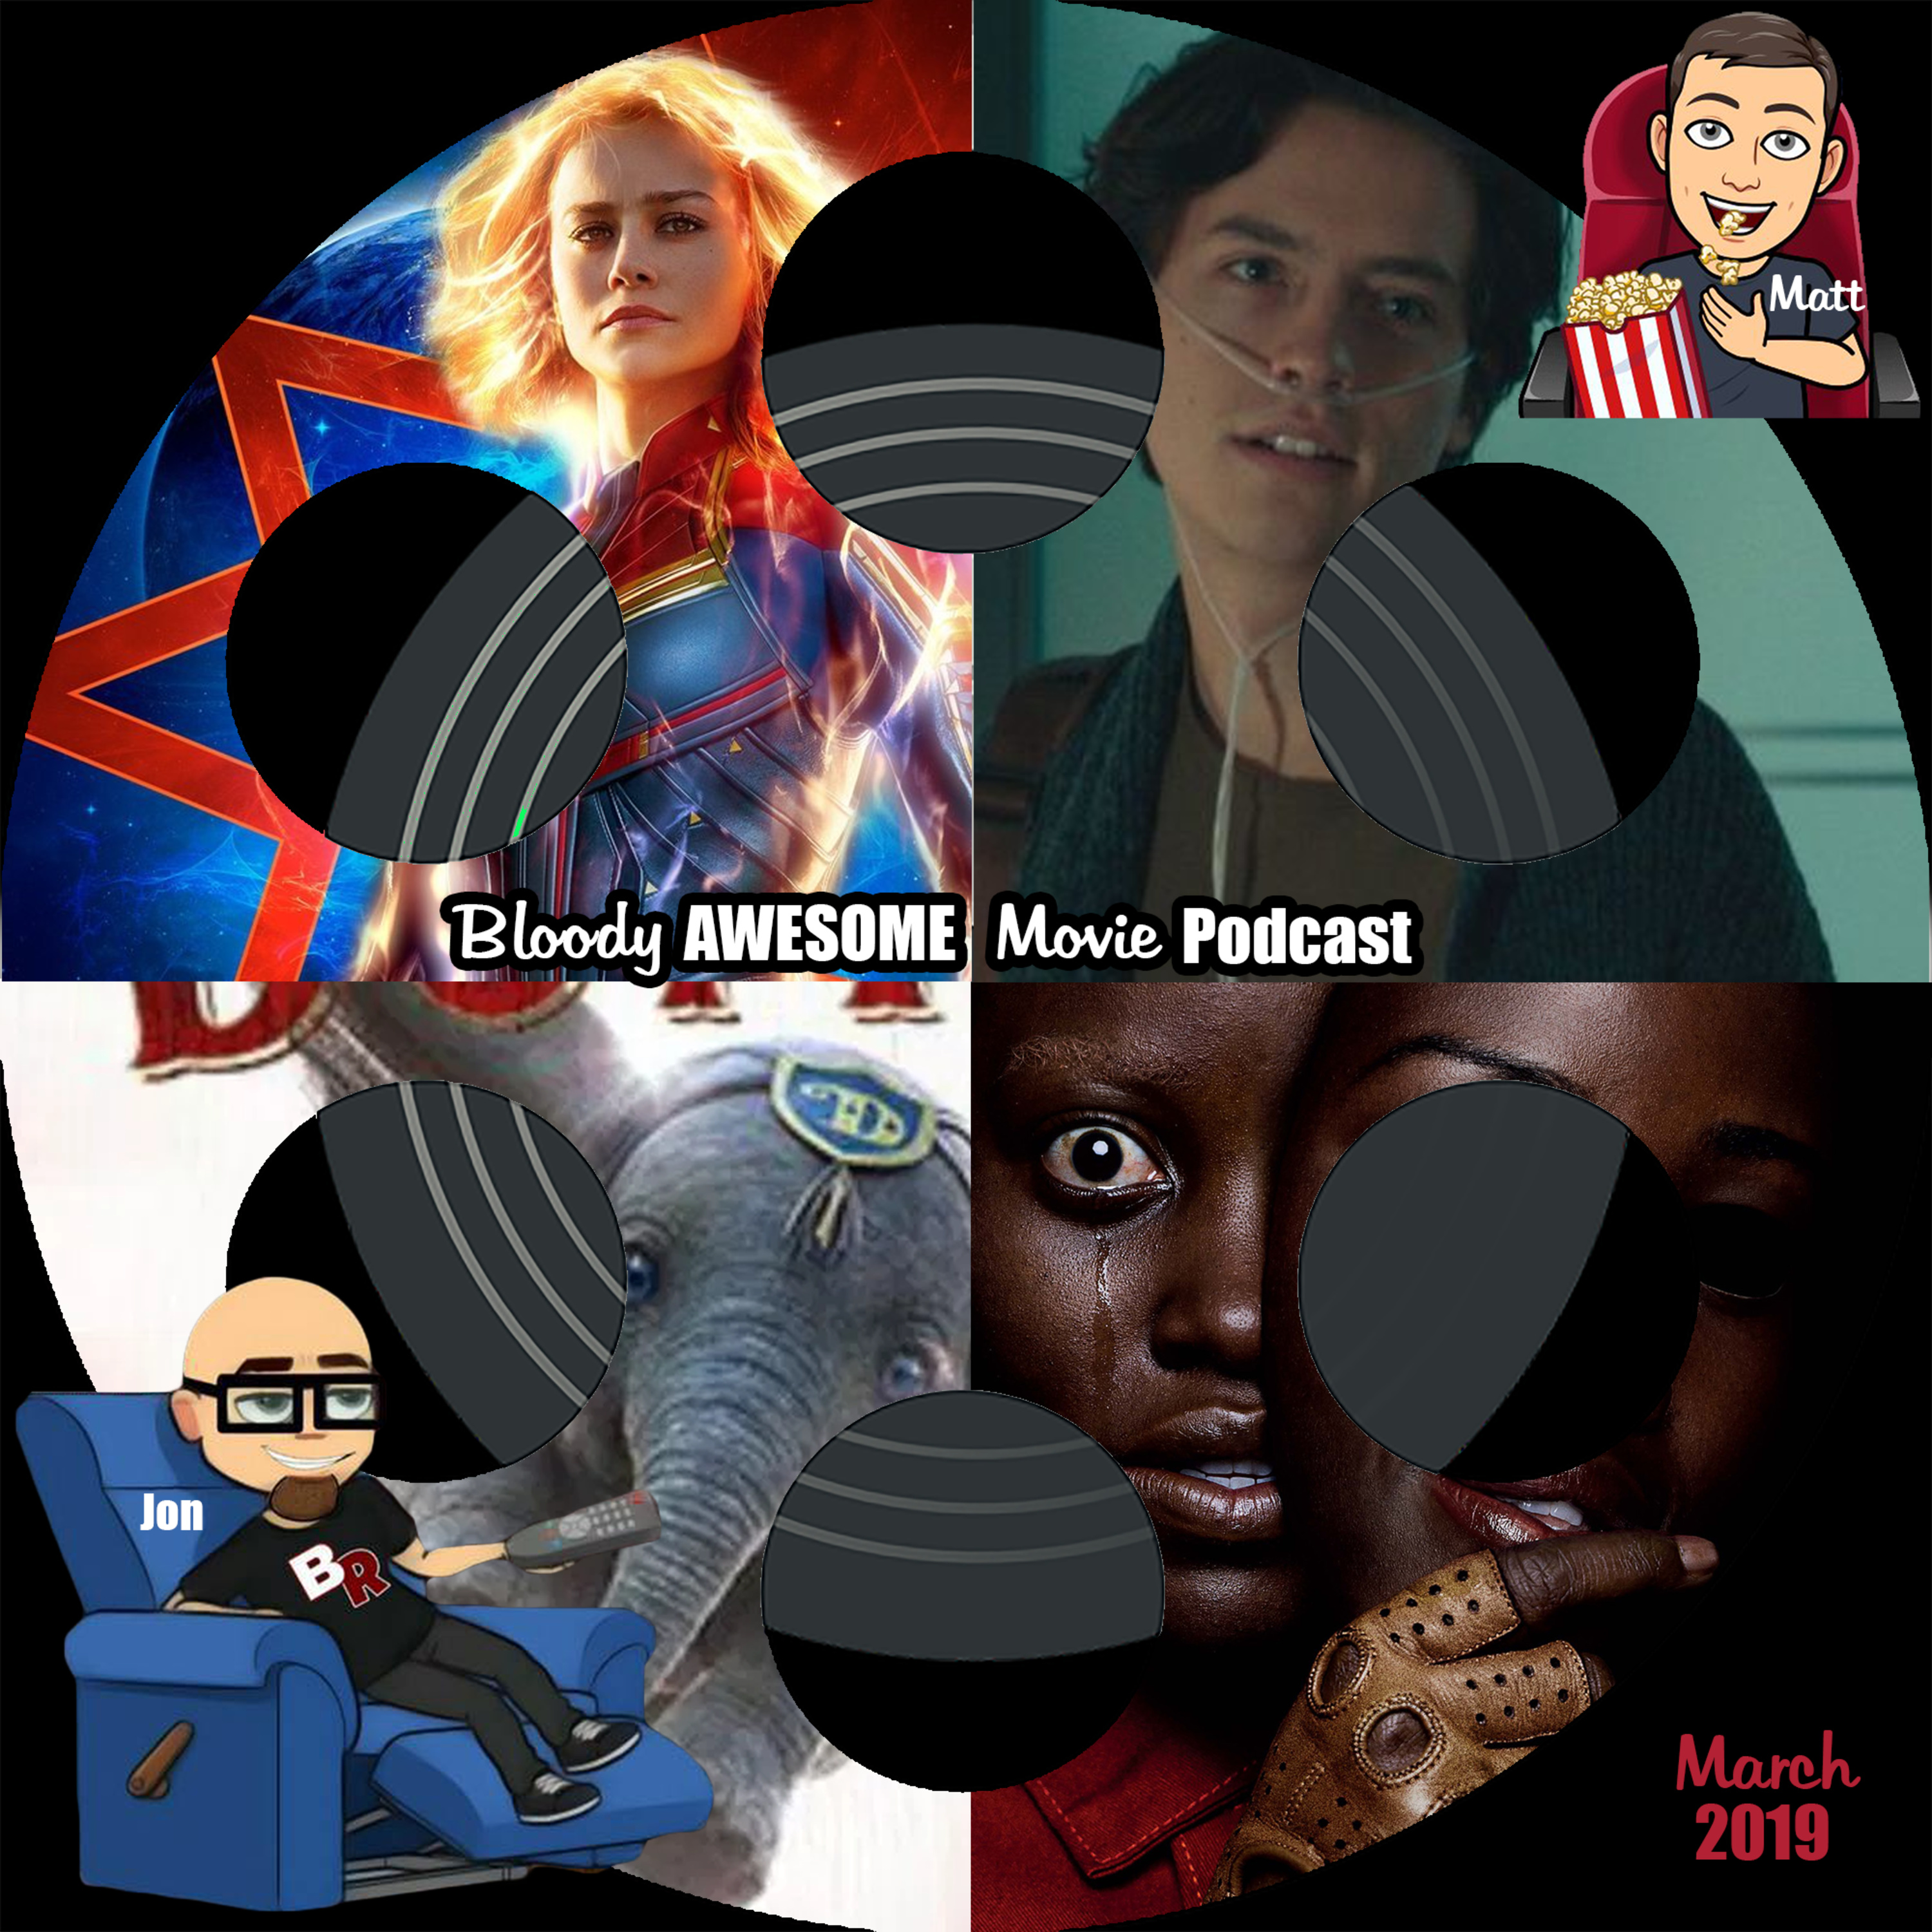 Bloody Awesome Movie Podcast - March 2019